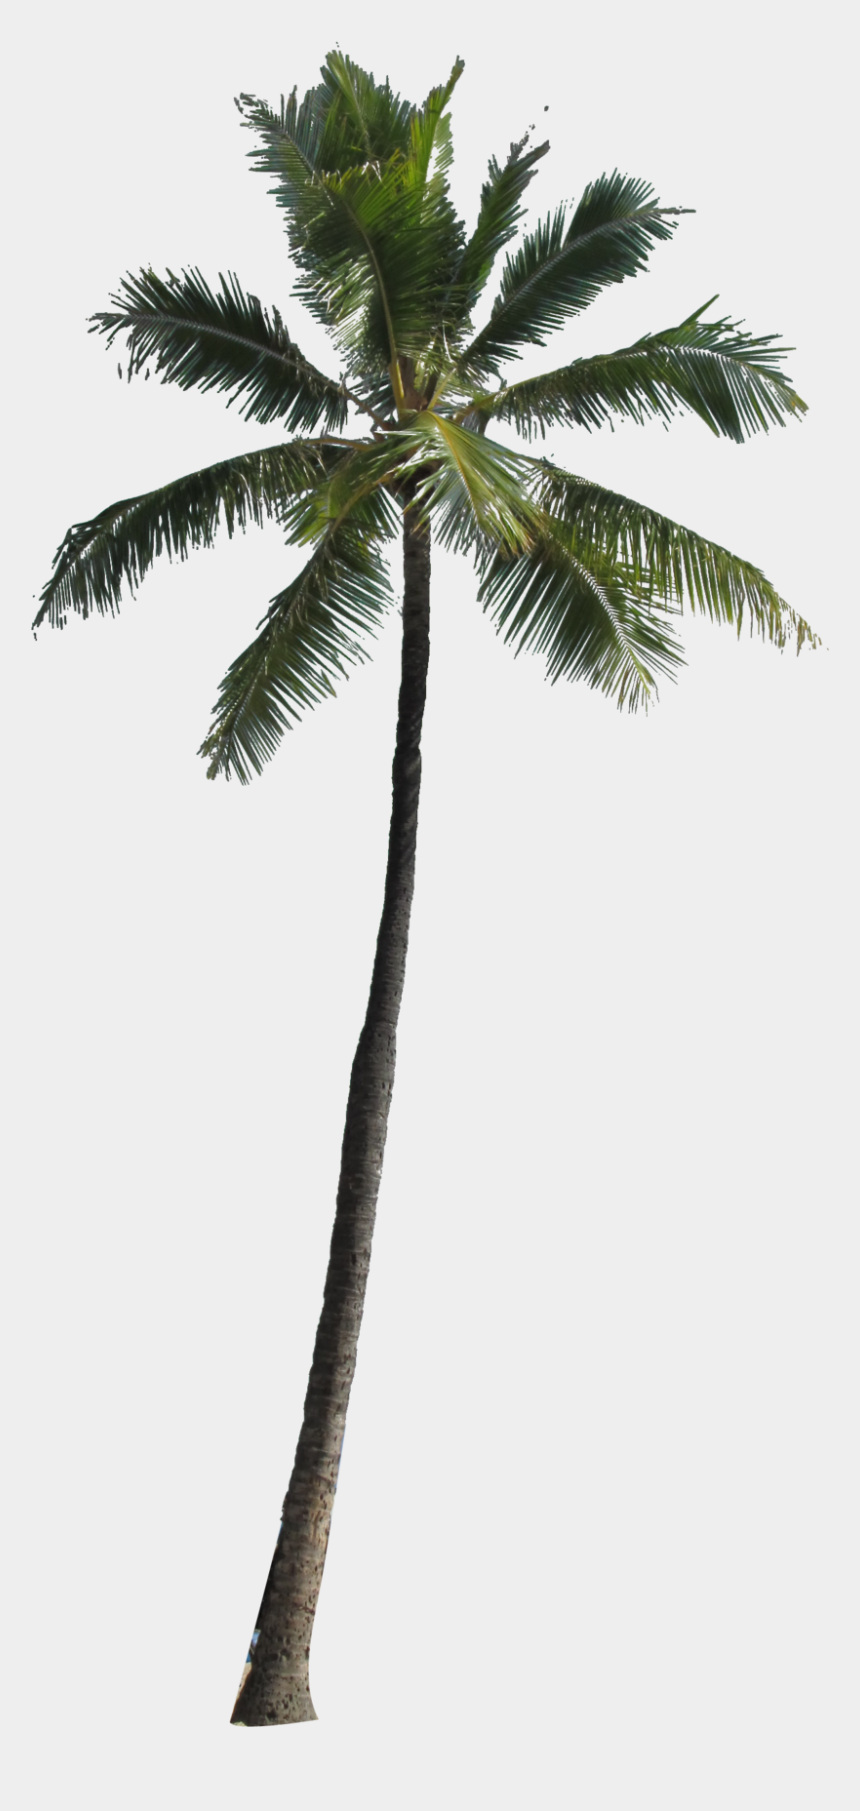 coconut tree clipart, Cartoons - Coconut Tree Png Picture - Coconut Tree For Photoshop